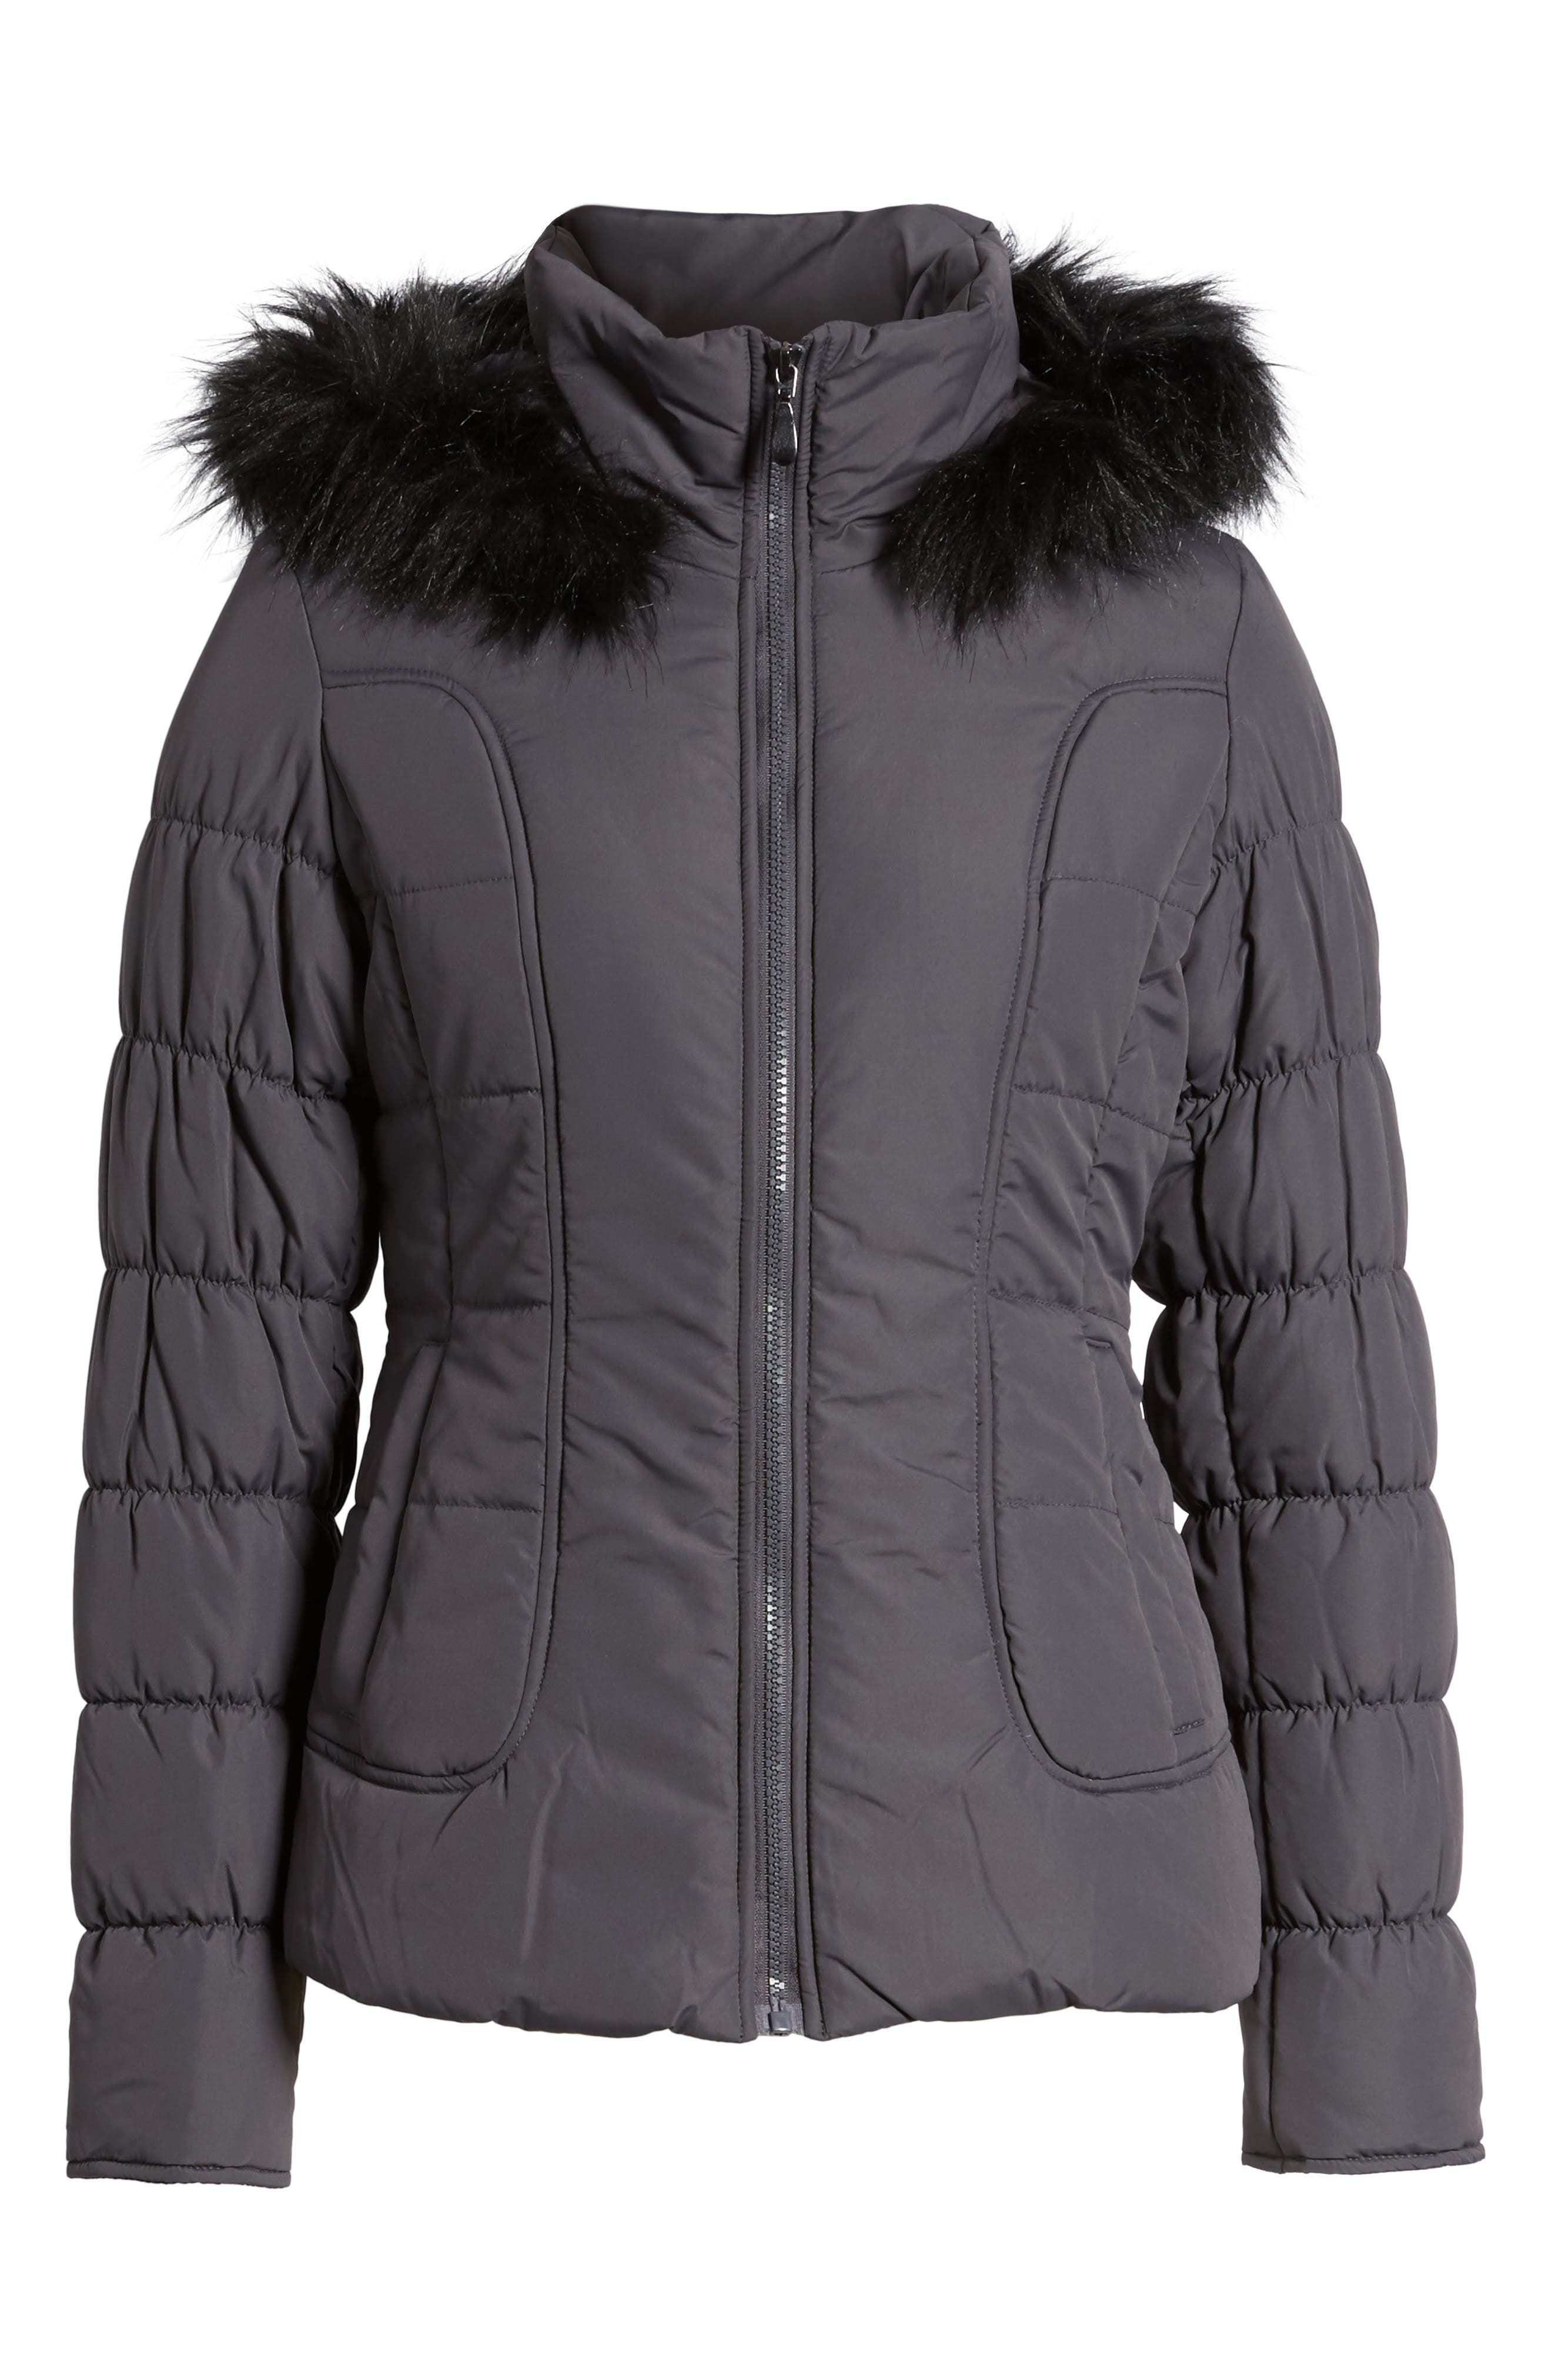 Quilted Jacket with Faux Fur Collar,                             Alternate thumbnail 6, color,                             Concrete